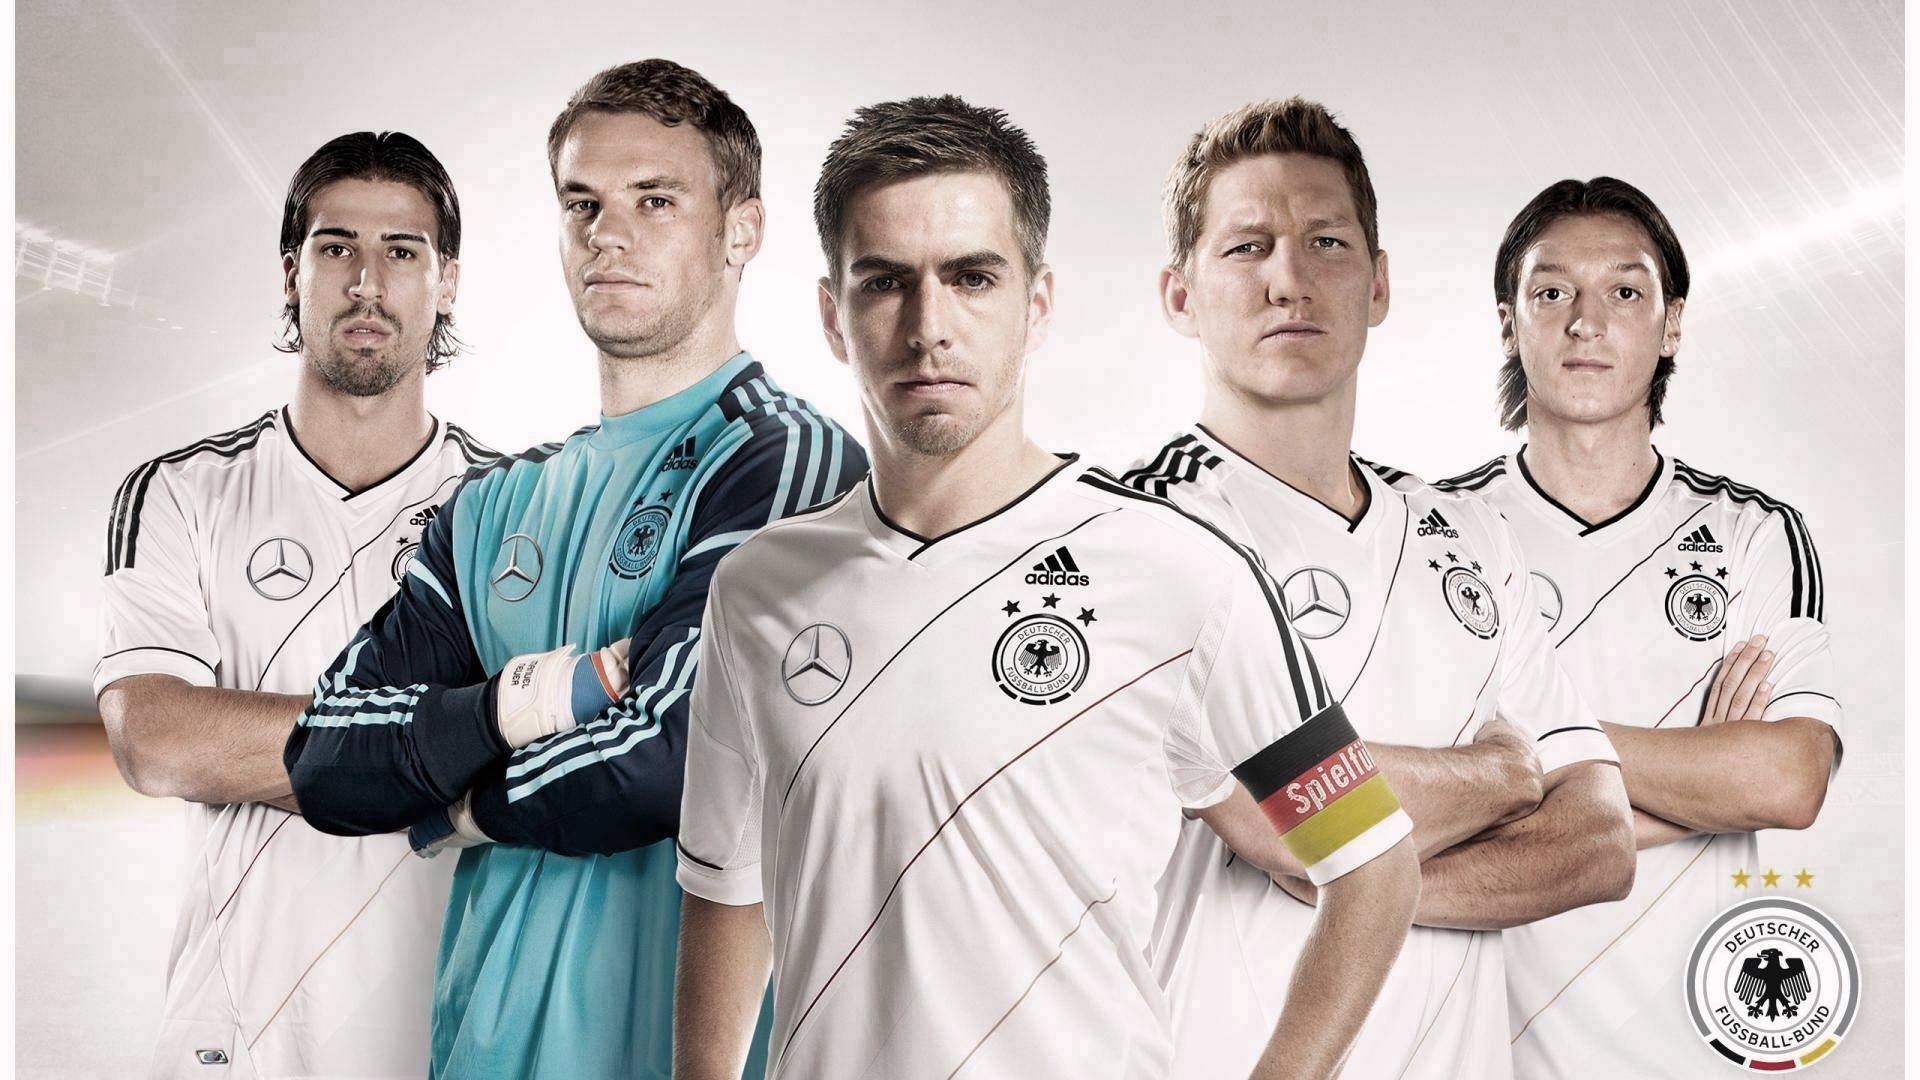 Germany S National Team Is Bound To Be The 2014 World Cup Winners Germany National Football Team National Football Teams Germany Team